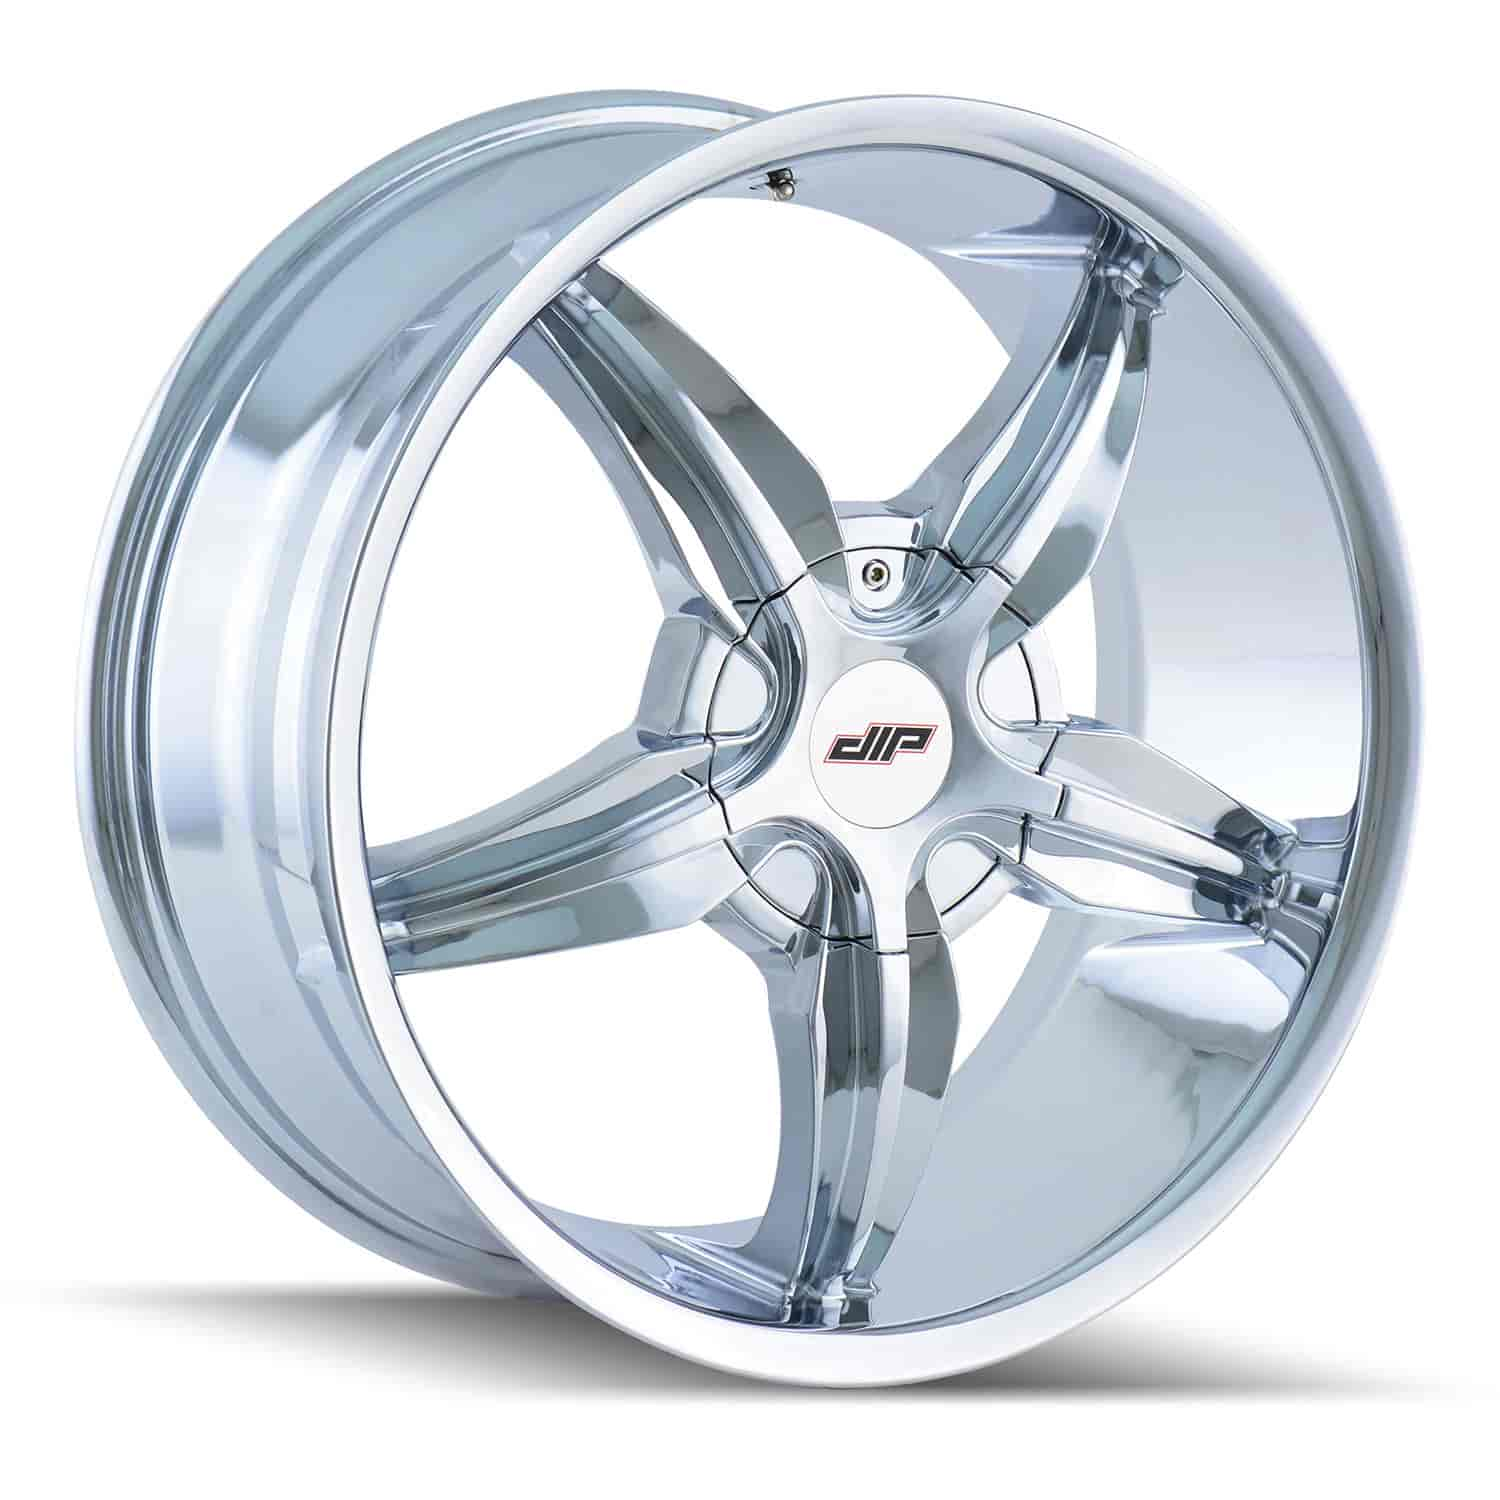 The Wheel Group D35-2814C